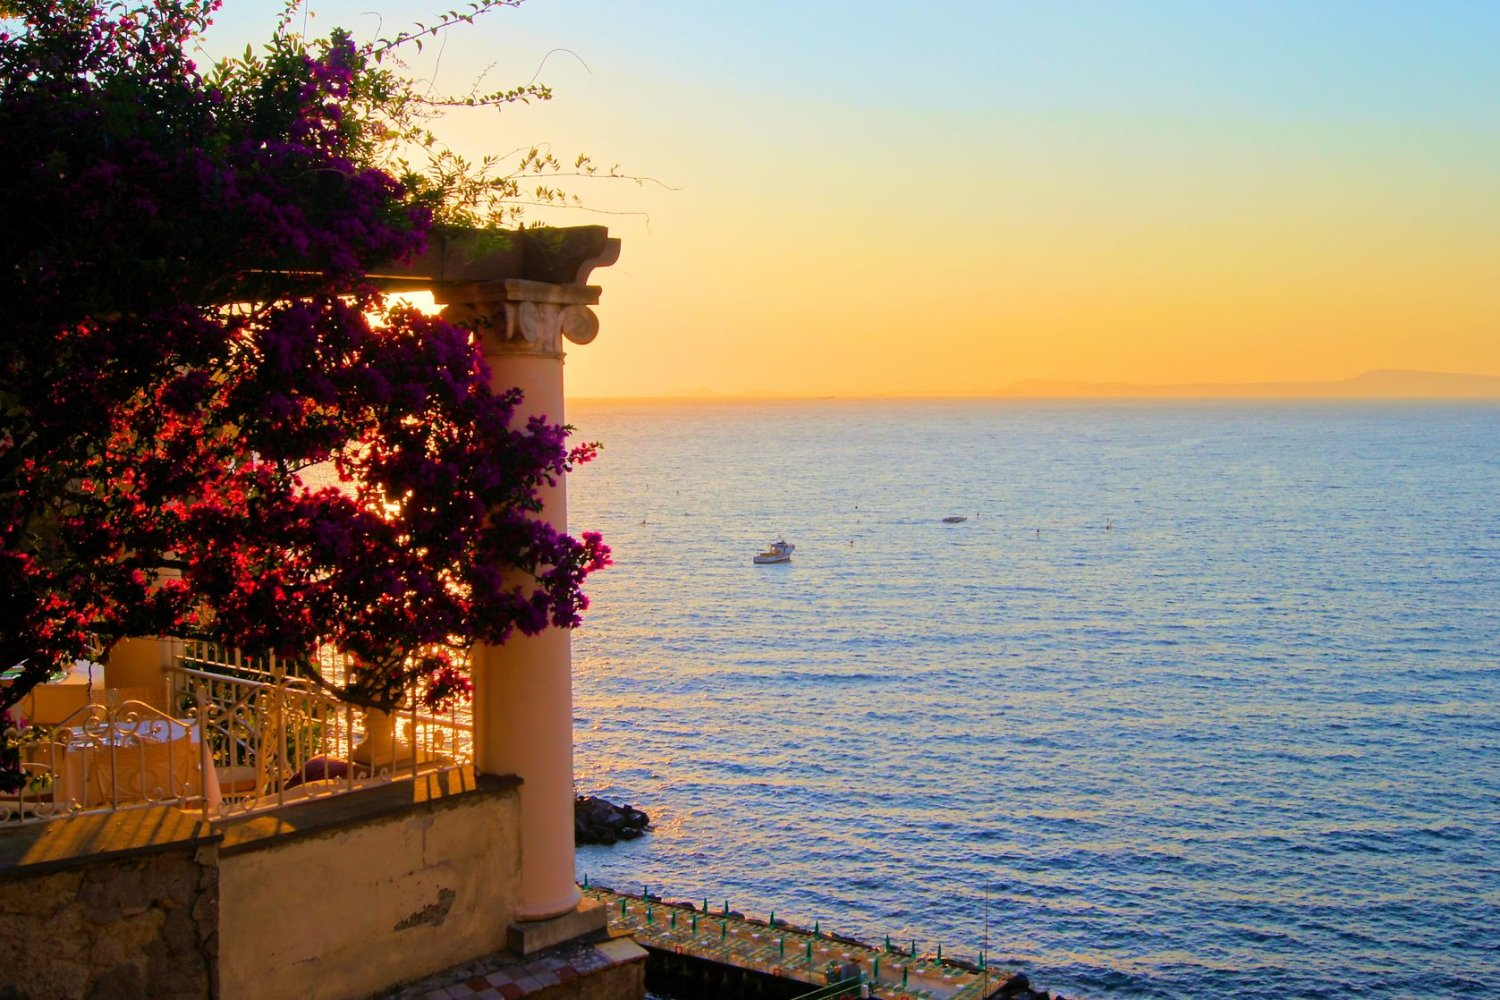 sunset view from sorrento terrace